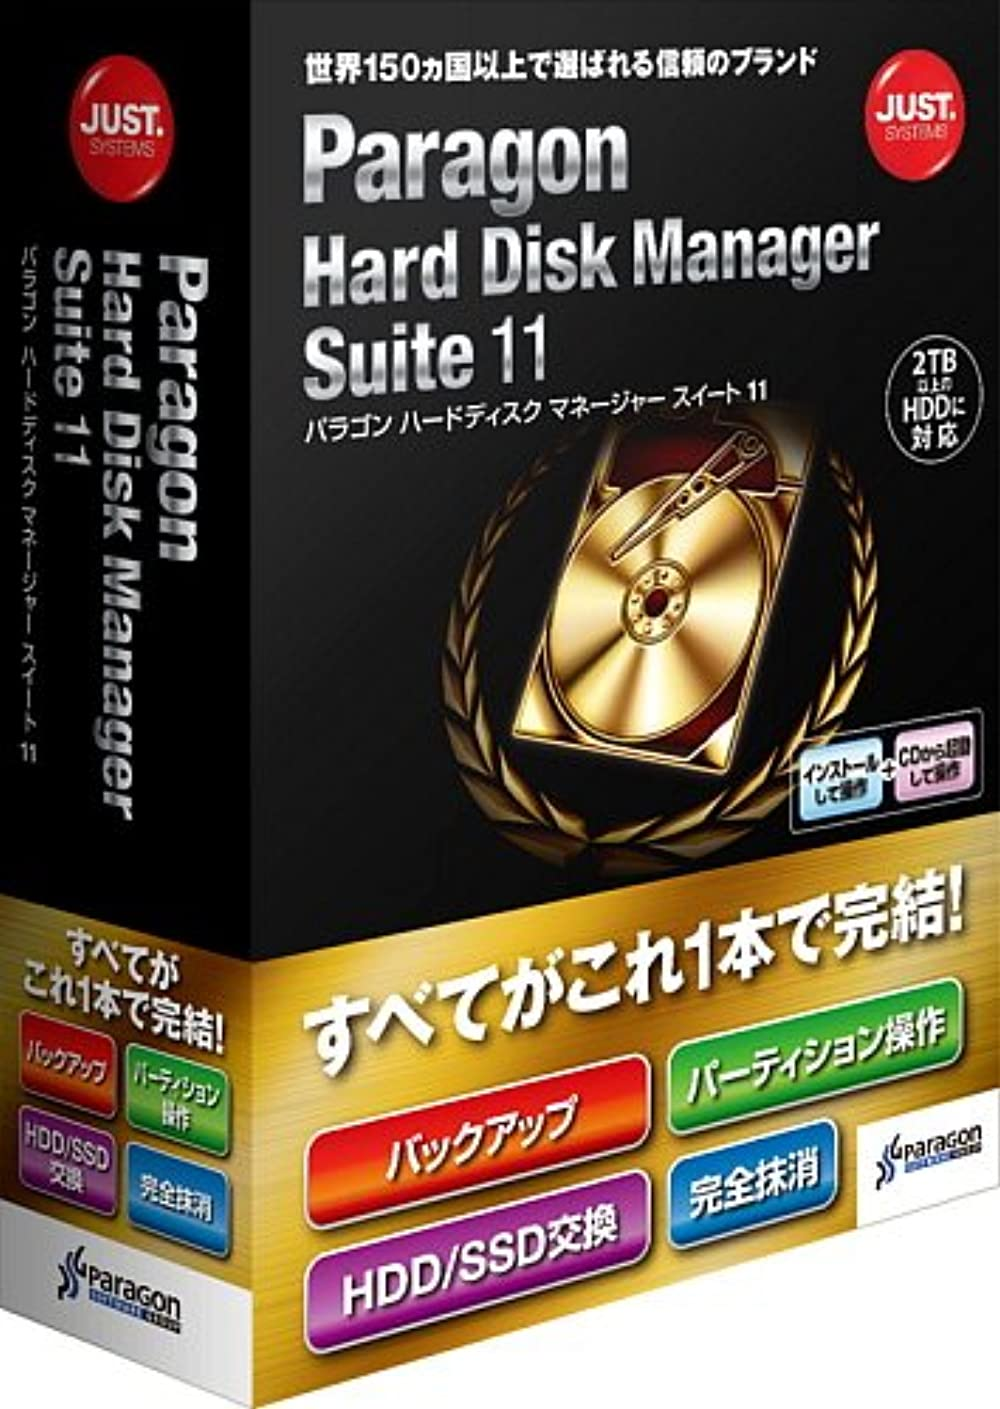 交差点震え学生Paragon Hard Disk Manager Suite 11 通常版